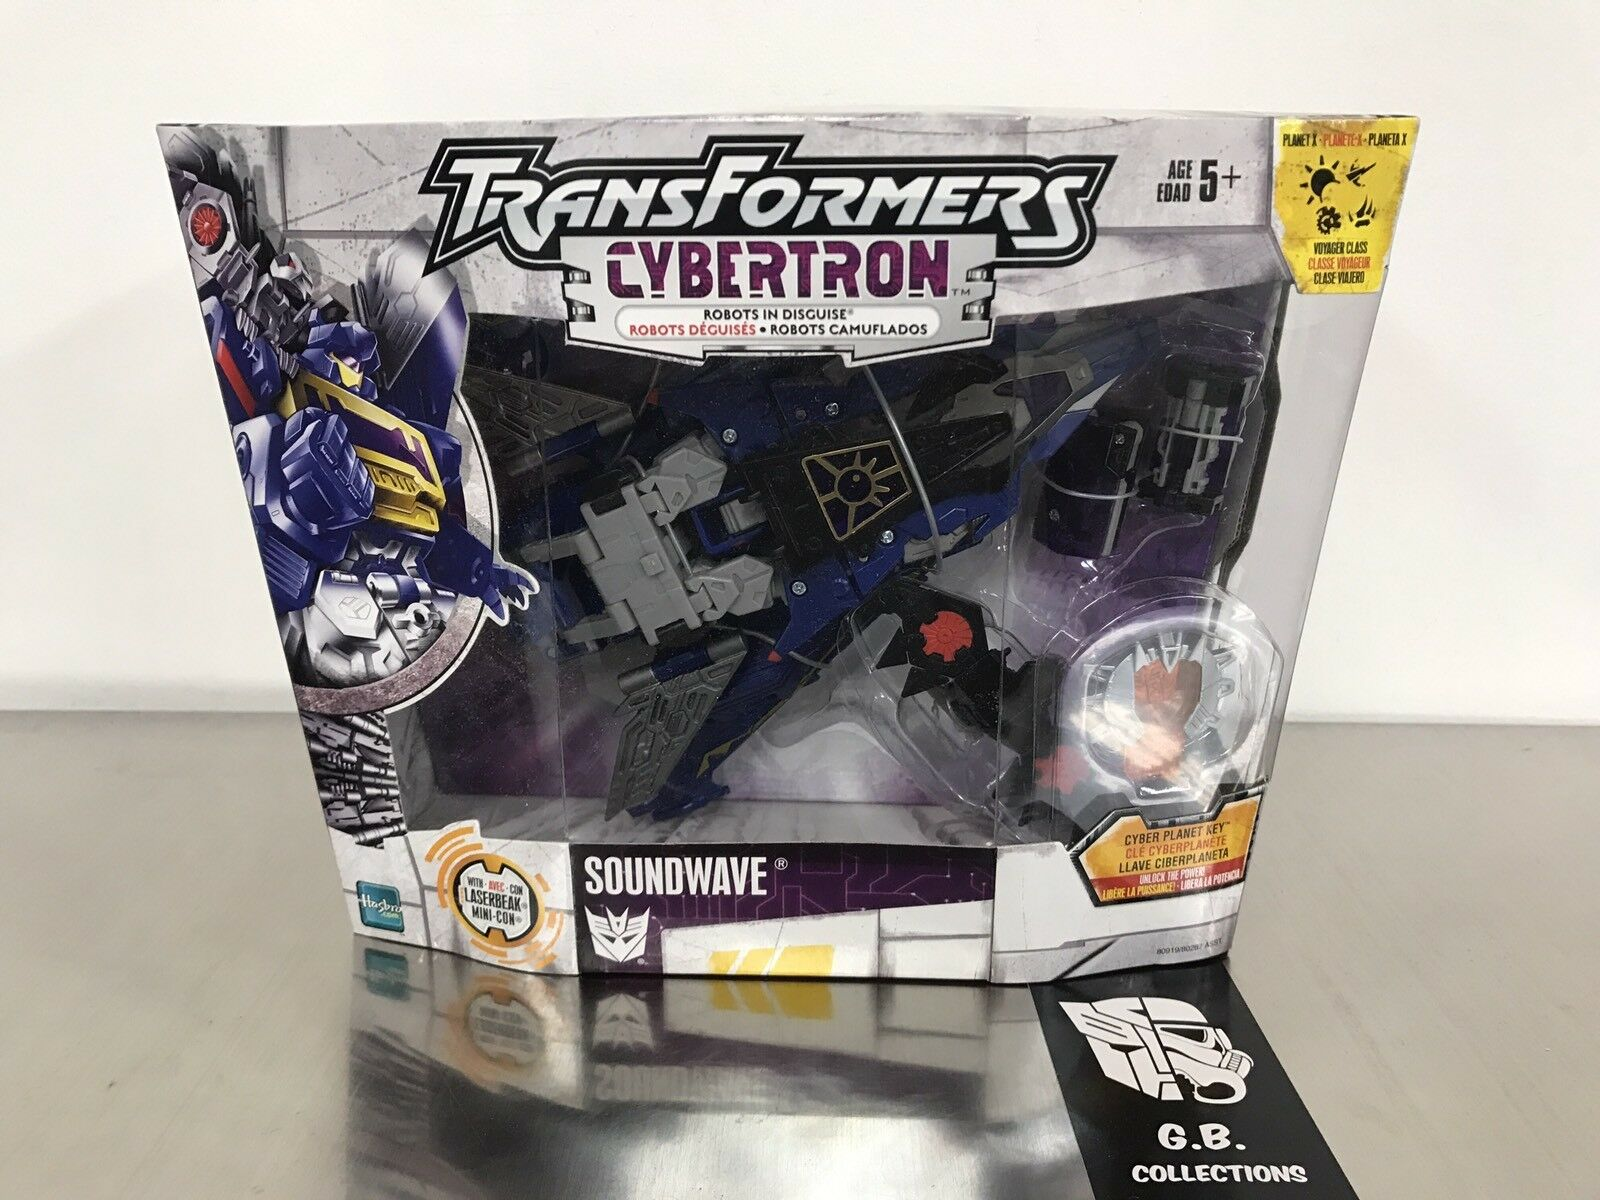 Transformers Cybertron Soundwave Voyager Class NEW SEALED